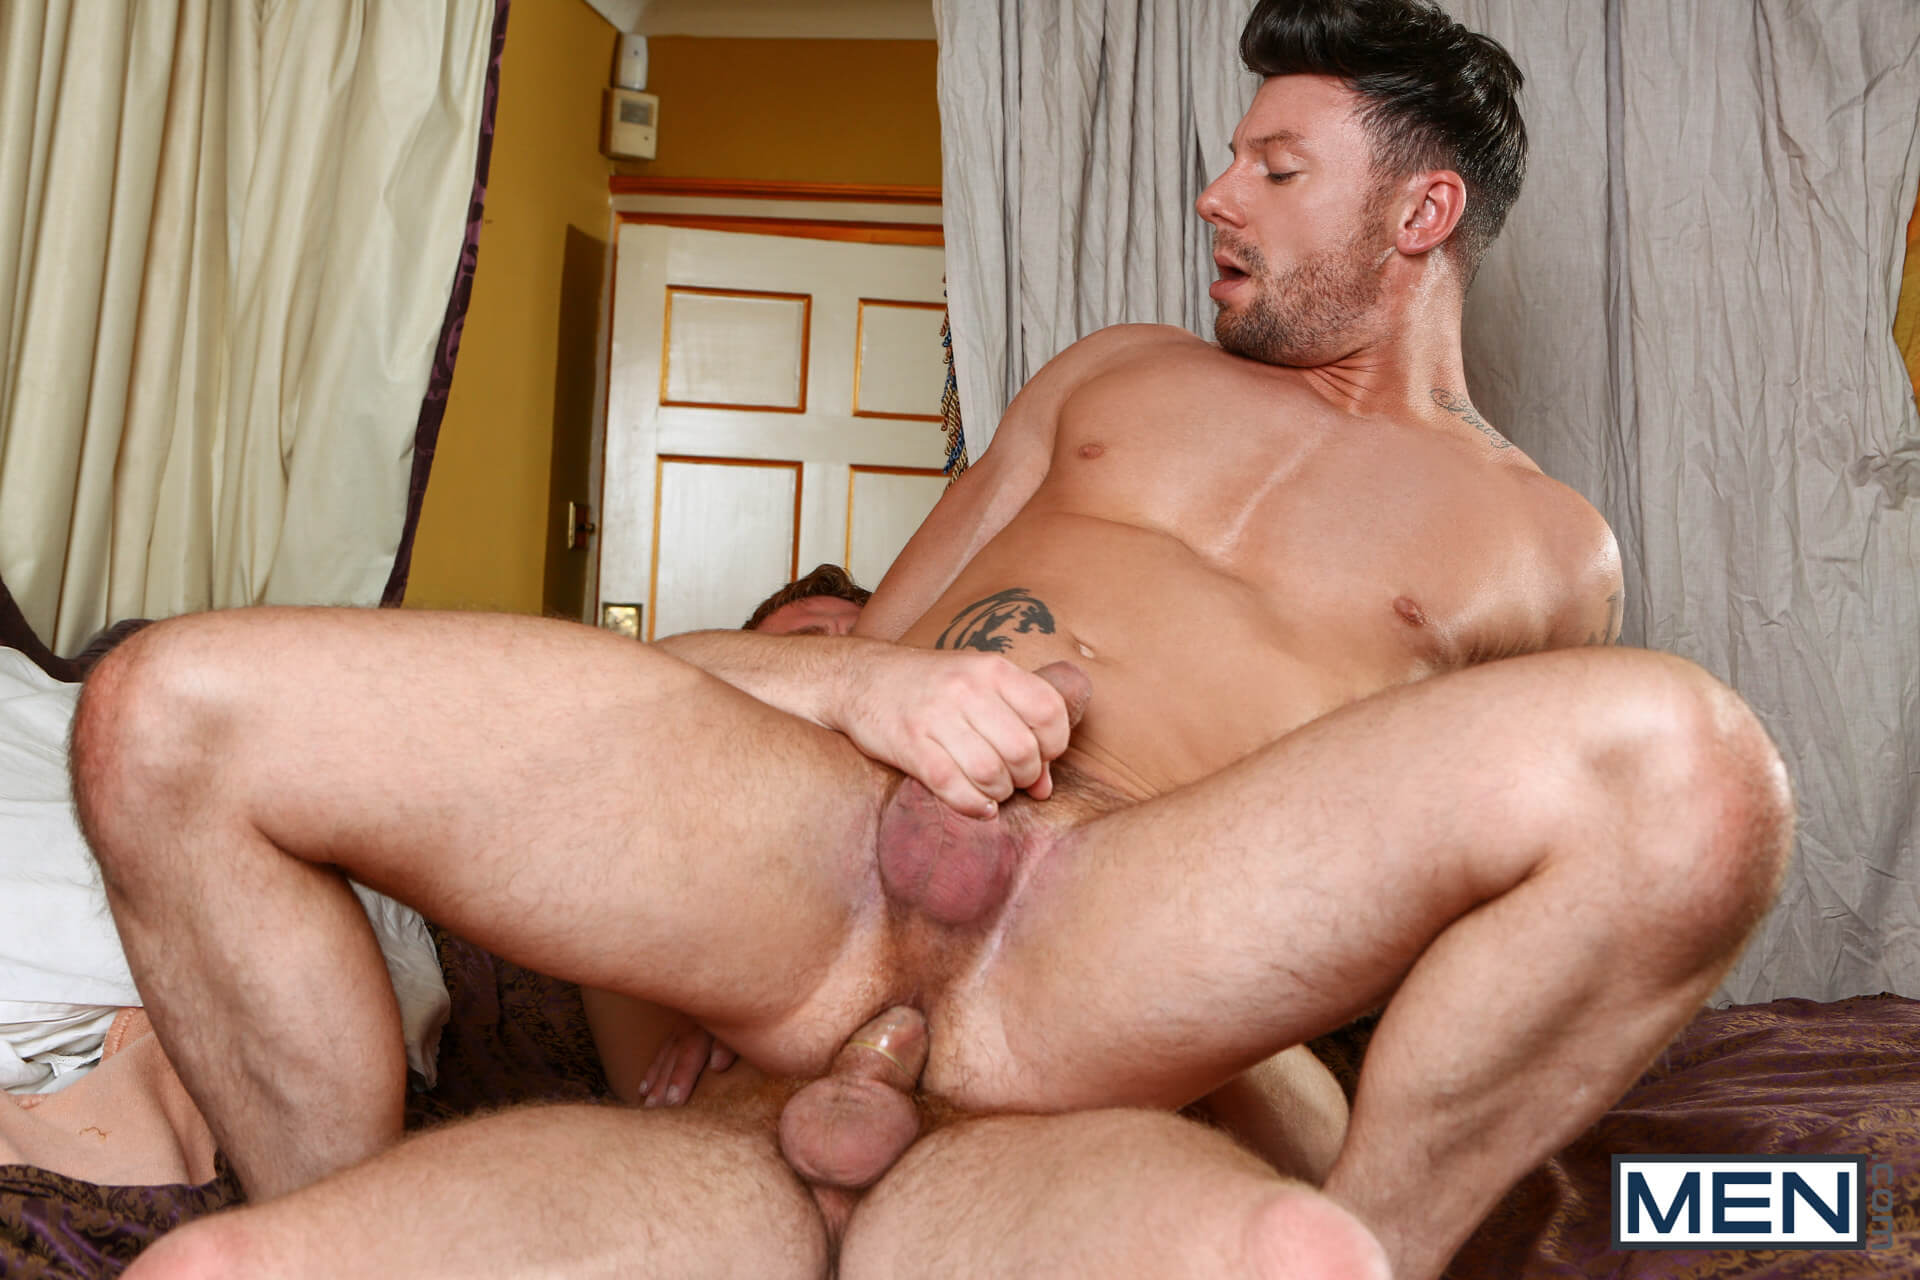 men men of uk a royal fuckfest part 1 connor maguire theo reid gay porn blog image 21